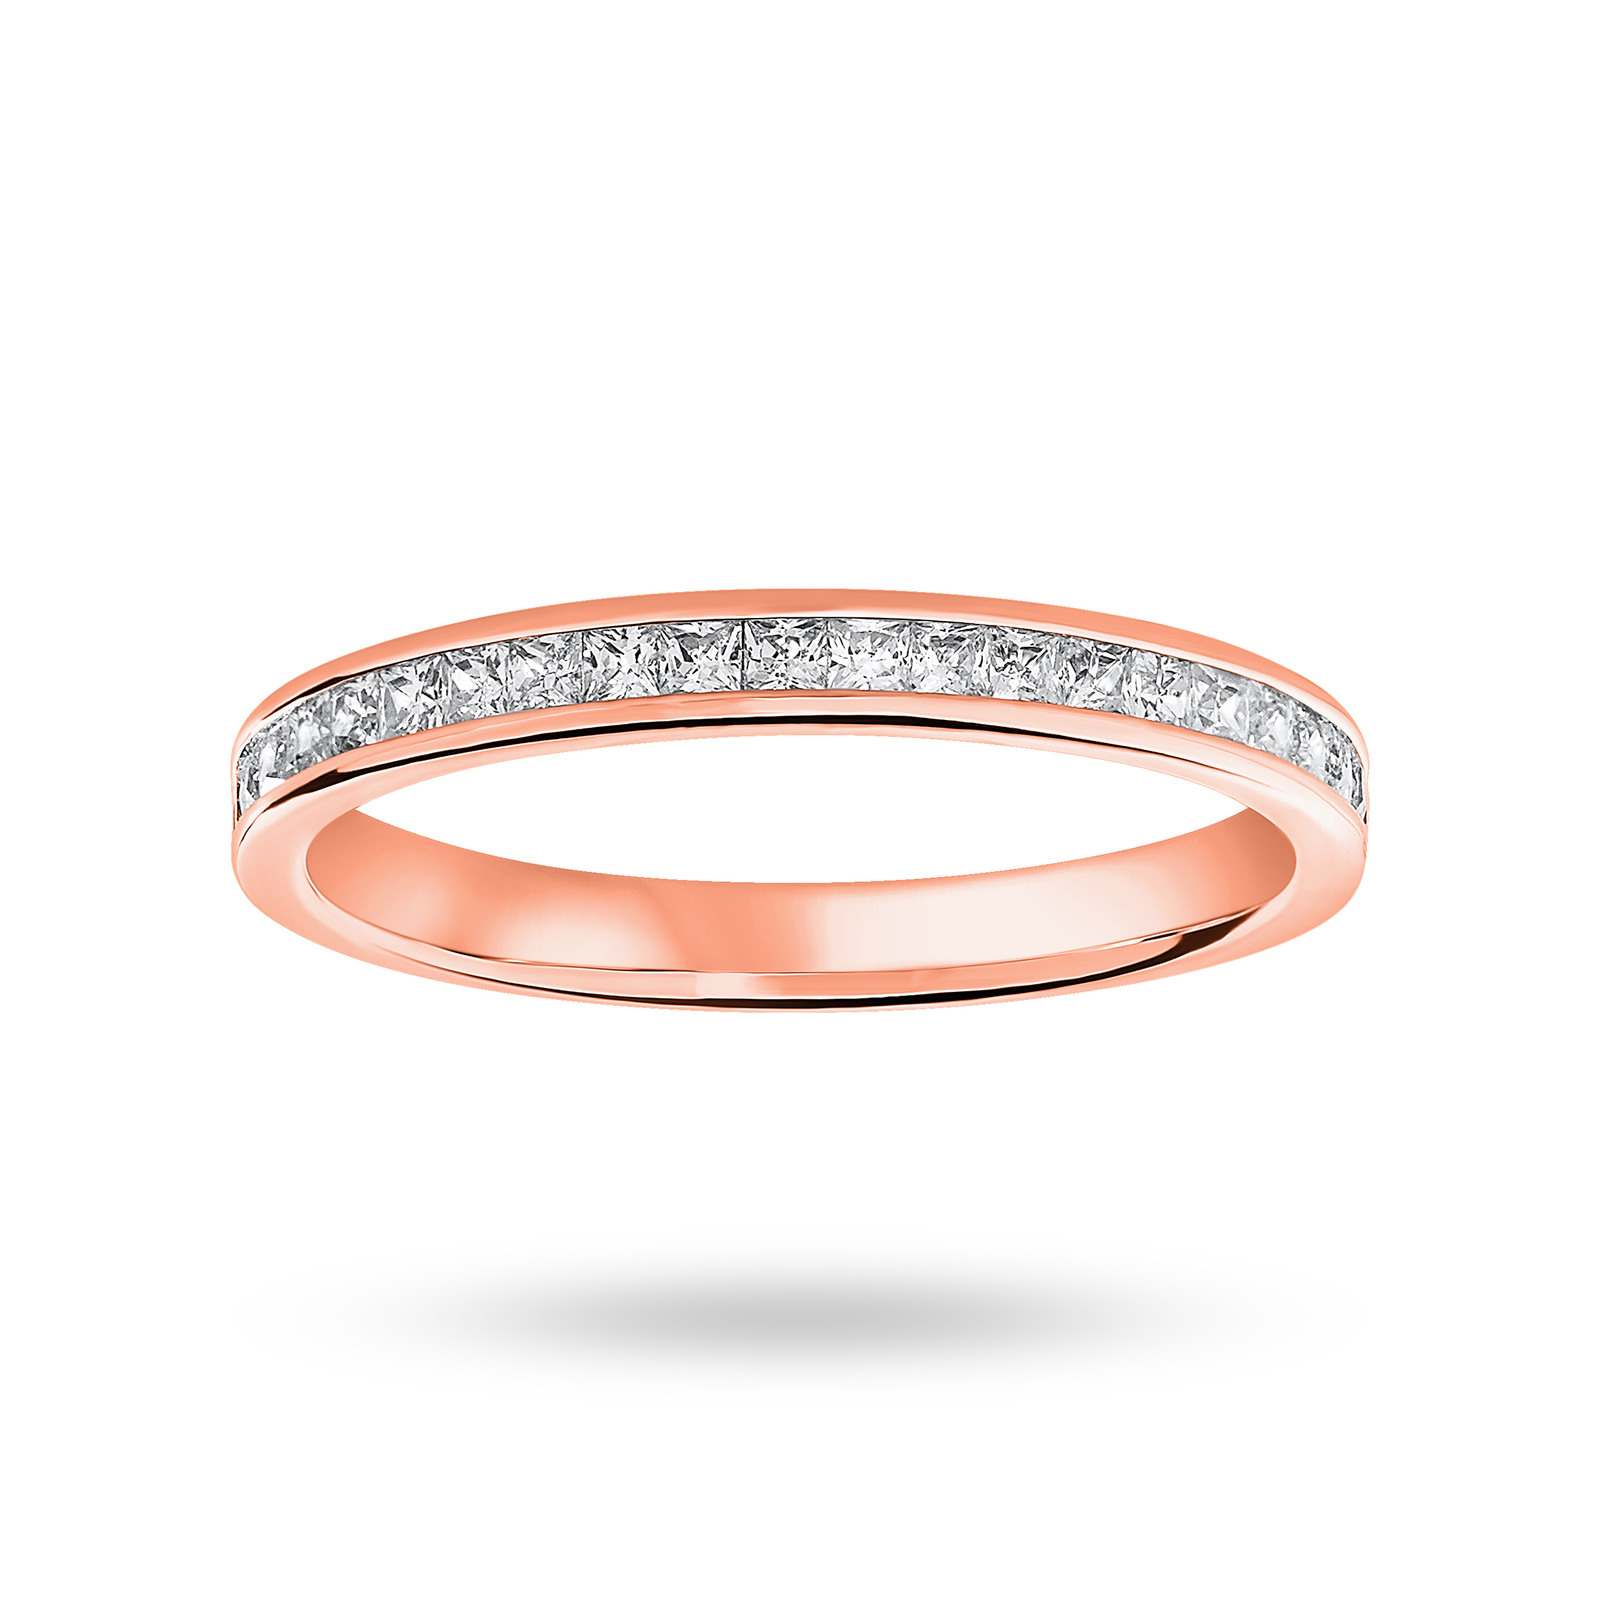 18 Carat Rose Gold 0.33 Carat Princess Cut Half Eternity Ring